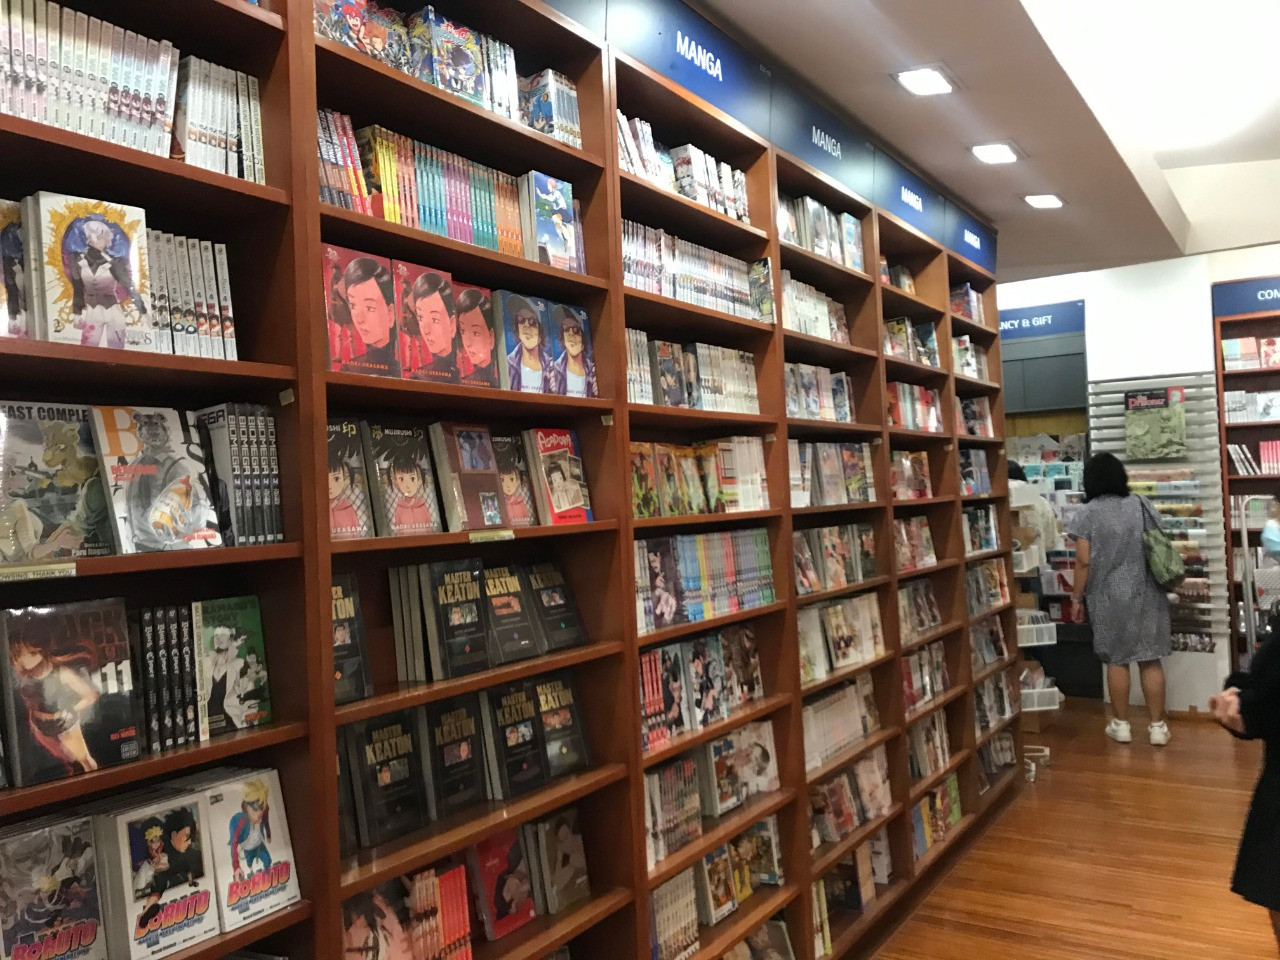 As Kinokuniya and more bookstores close down, book lovers pay tribute